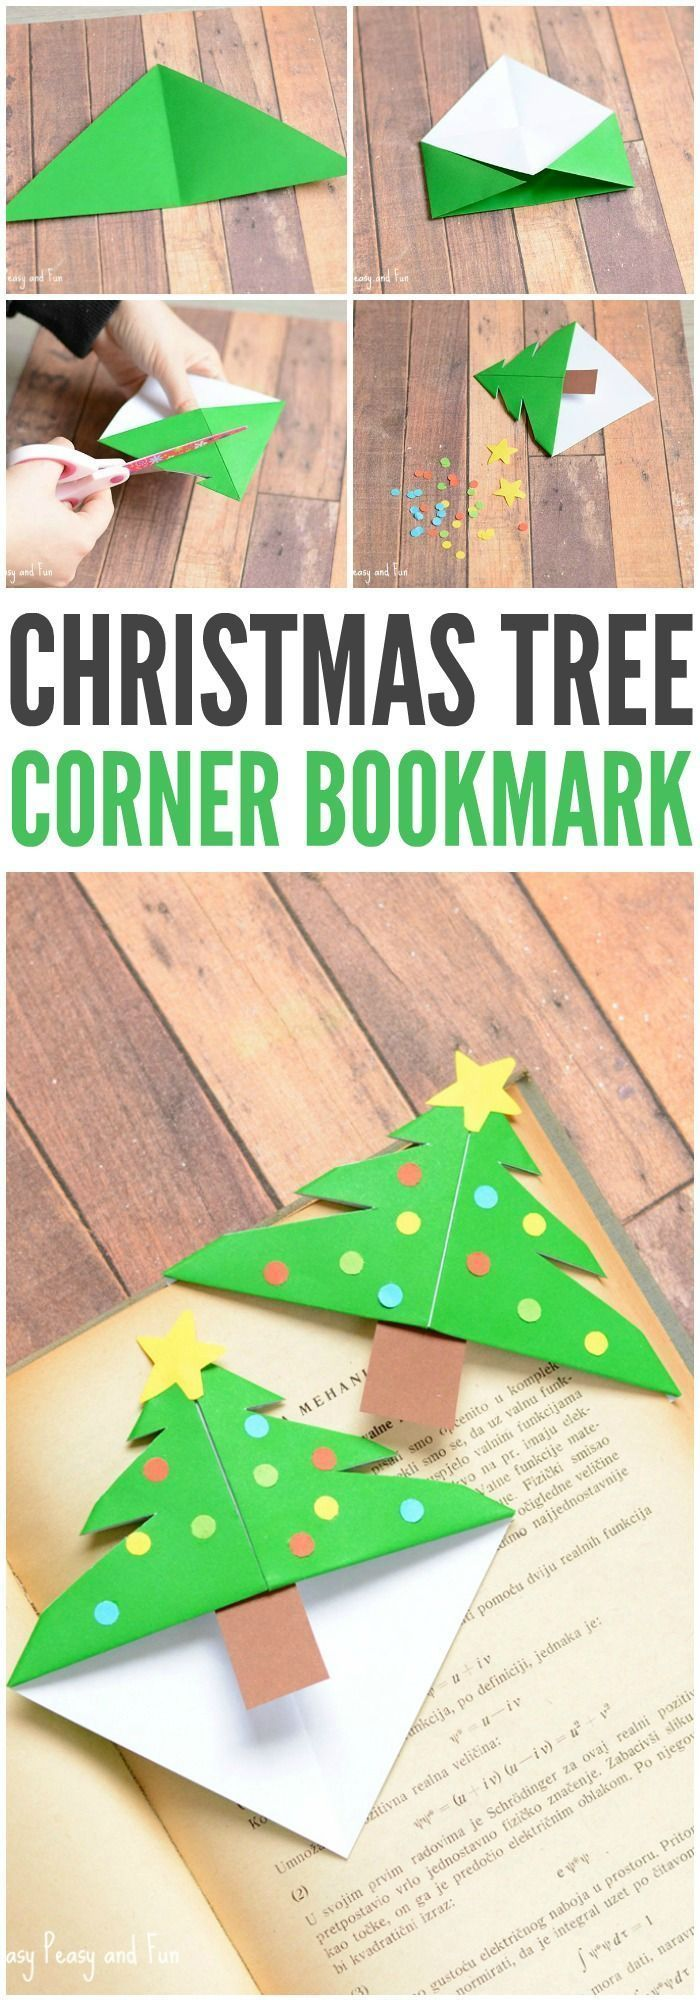 1000 ideas about corner bookmarks on pinterest for Bookmark craft for kids